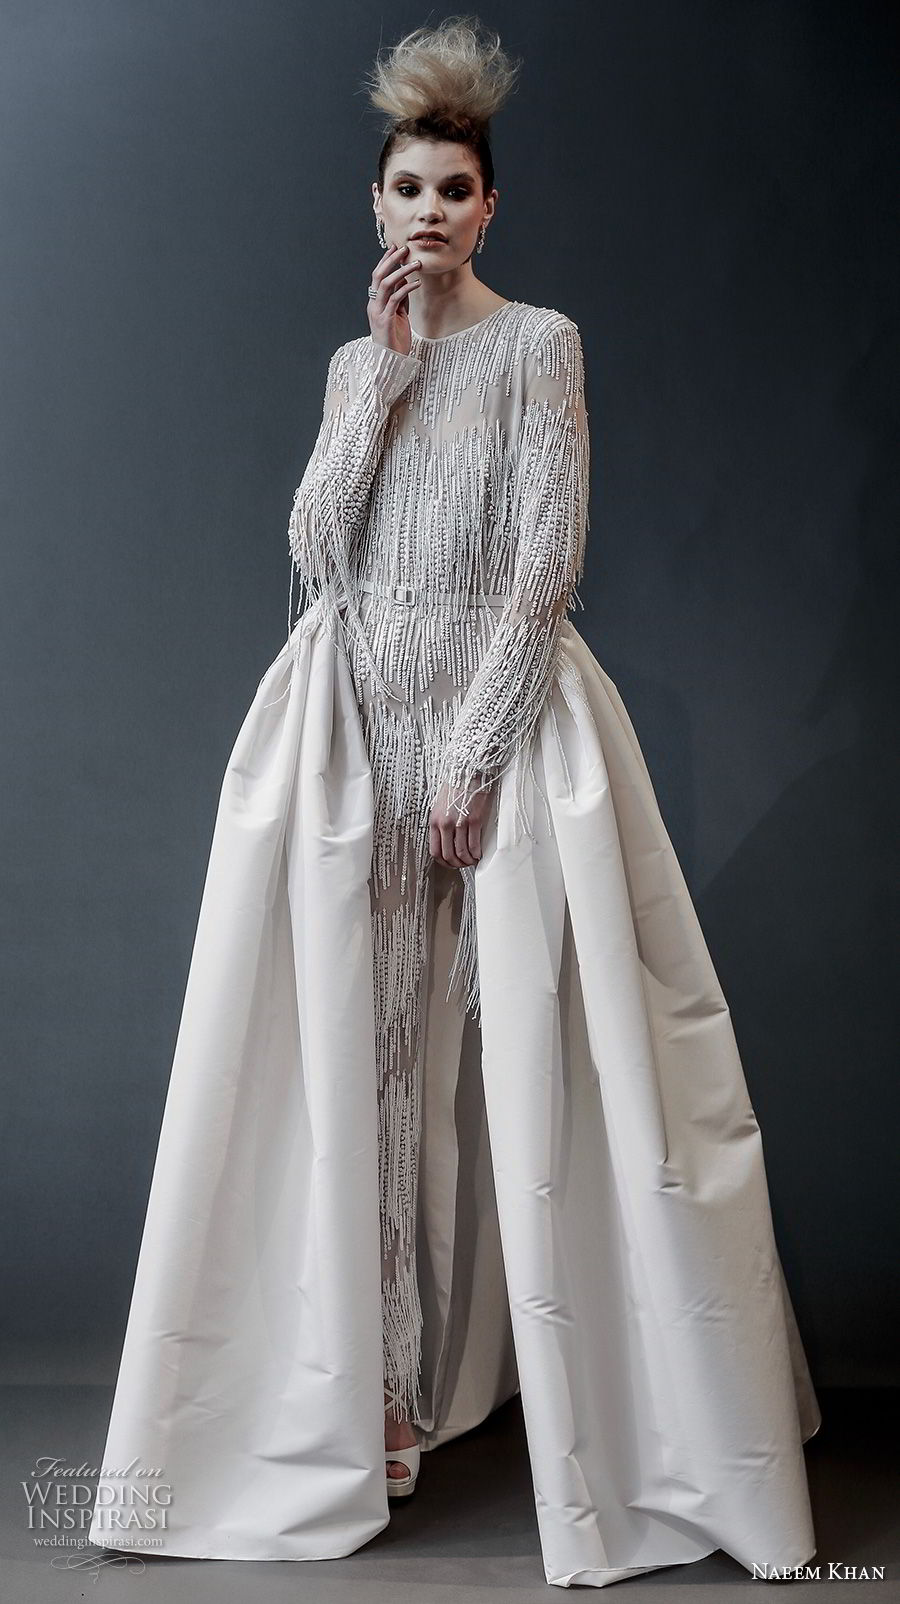 naeem khan spring 2019 bridal long sleeves jewel neck full embellishment modern glamorous jumpsuit wedding dress a line overskirt covered back sweep train (4) mv